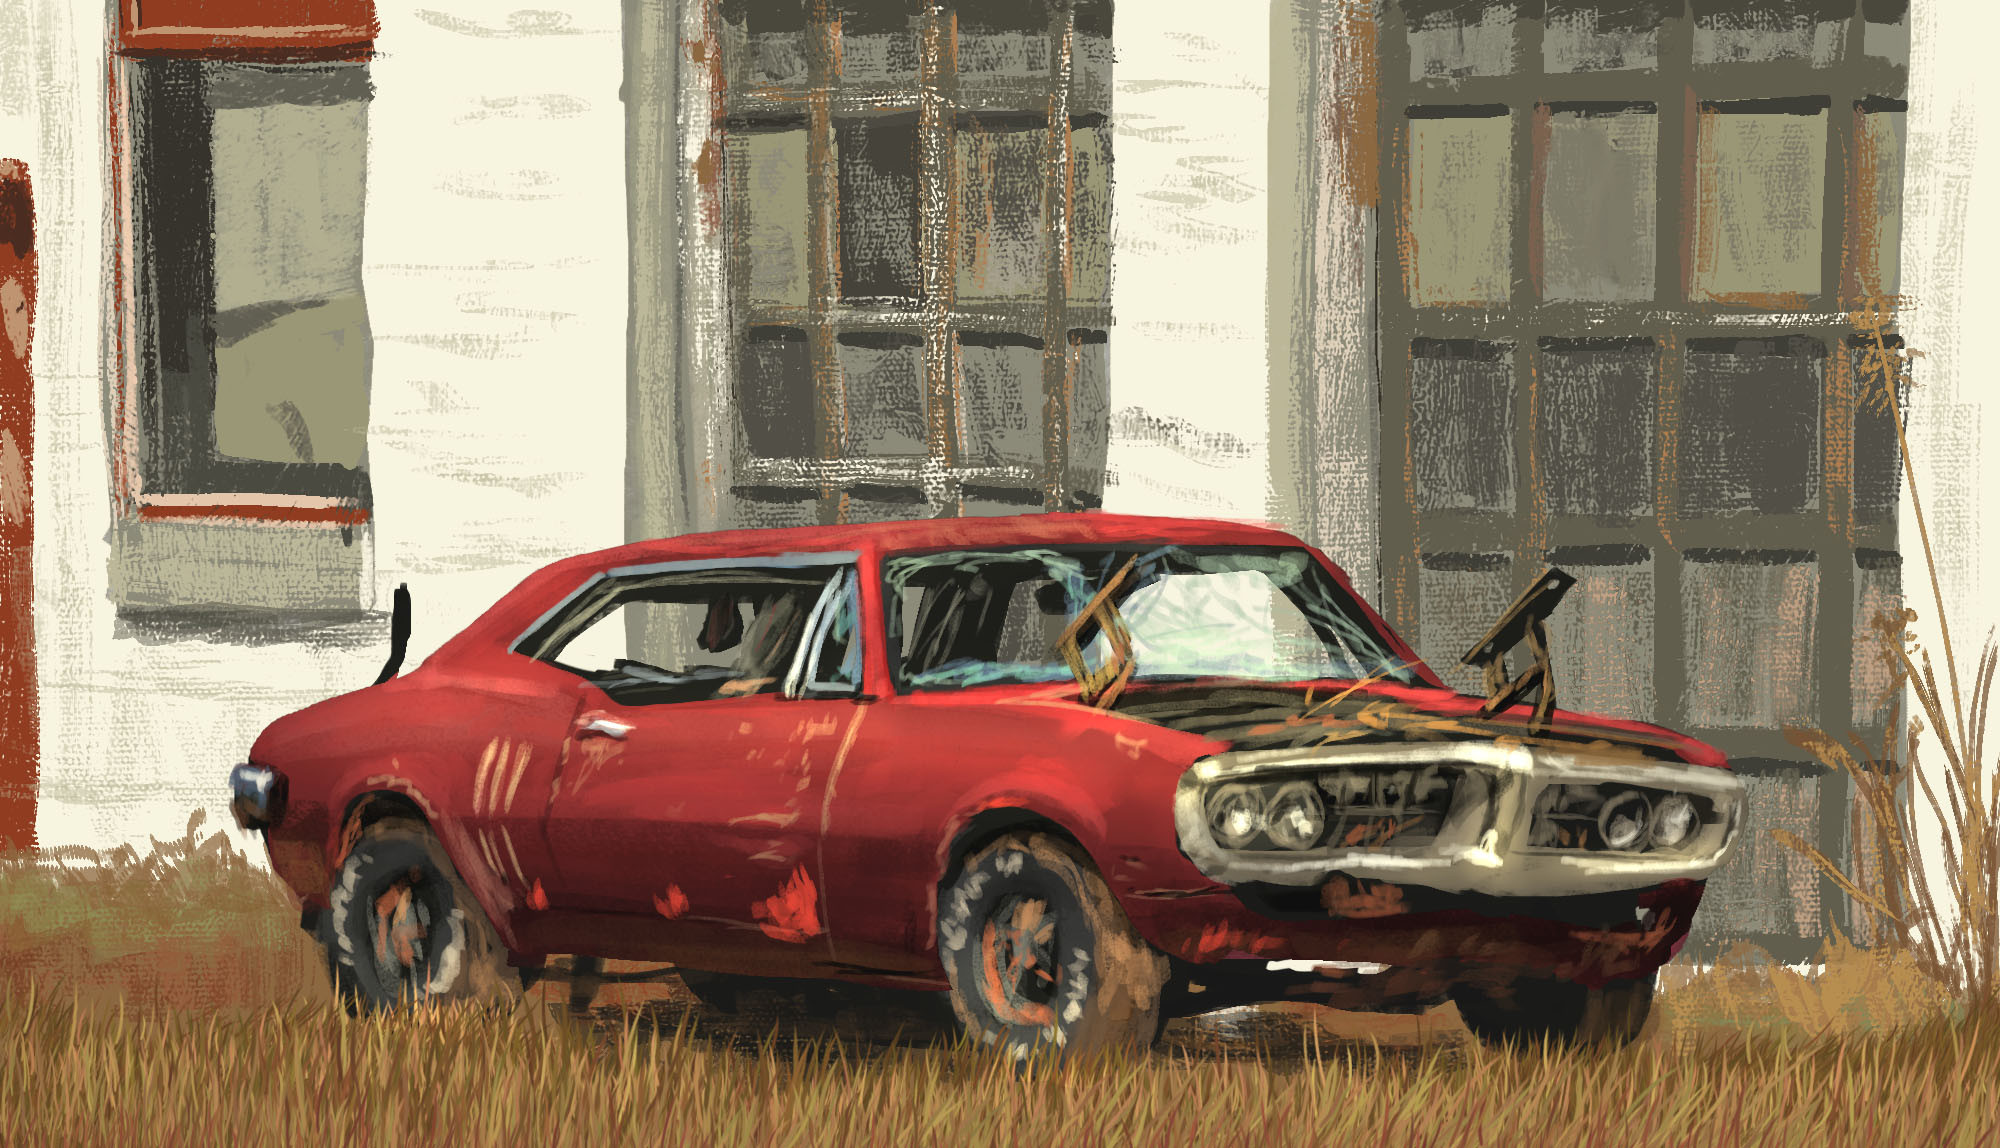 Photo Study: Red Rusts Faster  The decay and decomposition of such a beautiful man-made thing is always interesting as well as a bit sad. Somehow peaceful as well. These days I have try an intact car as well, I think...